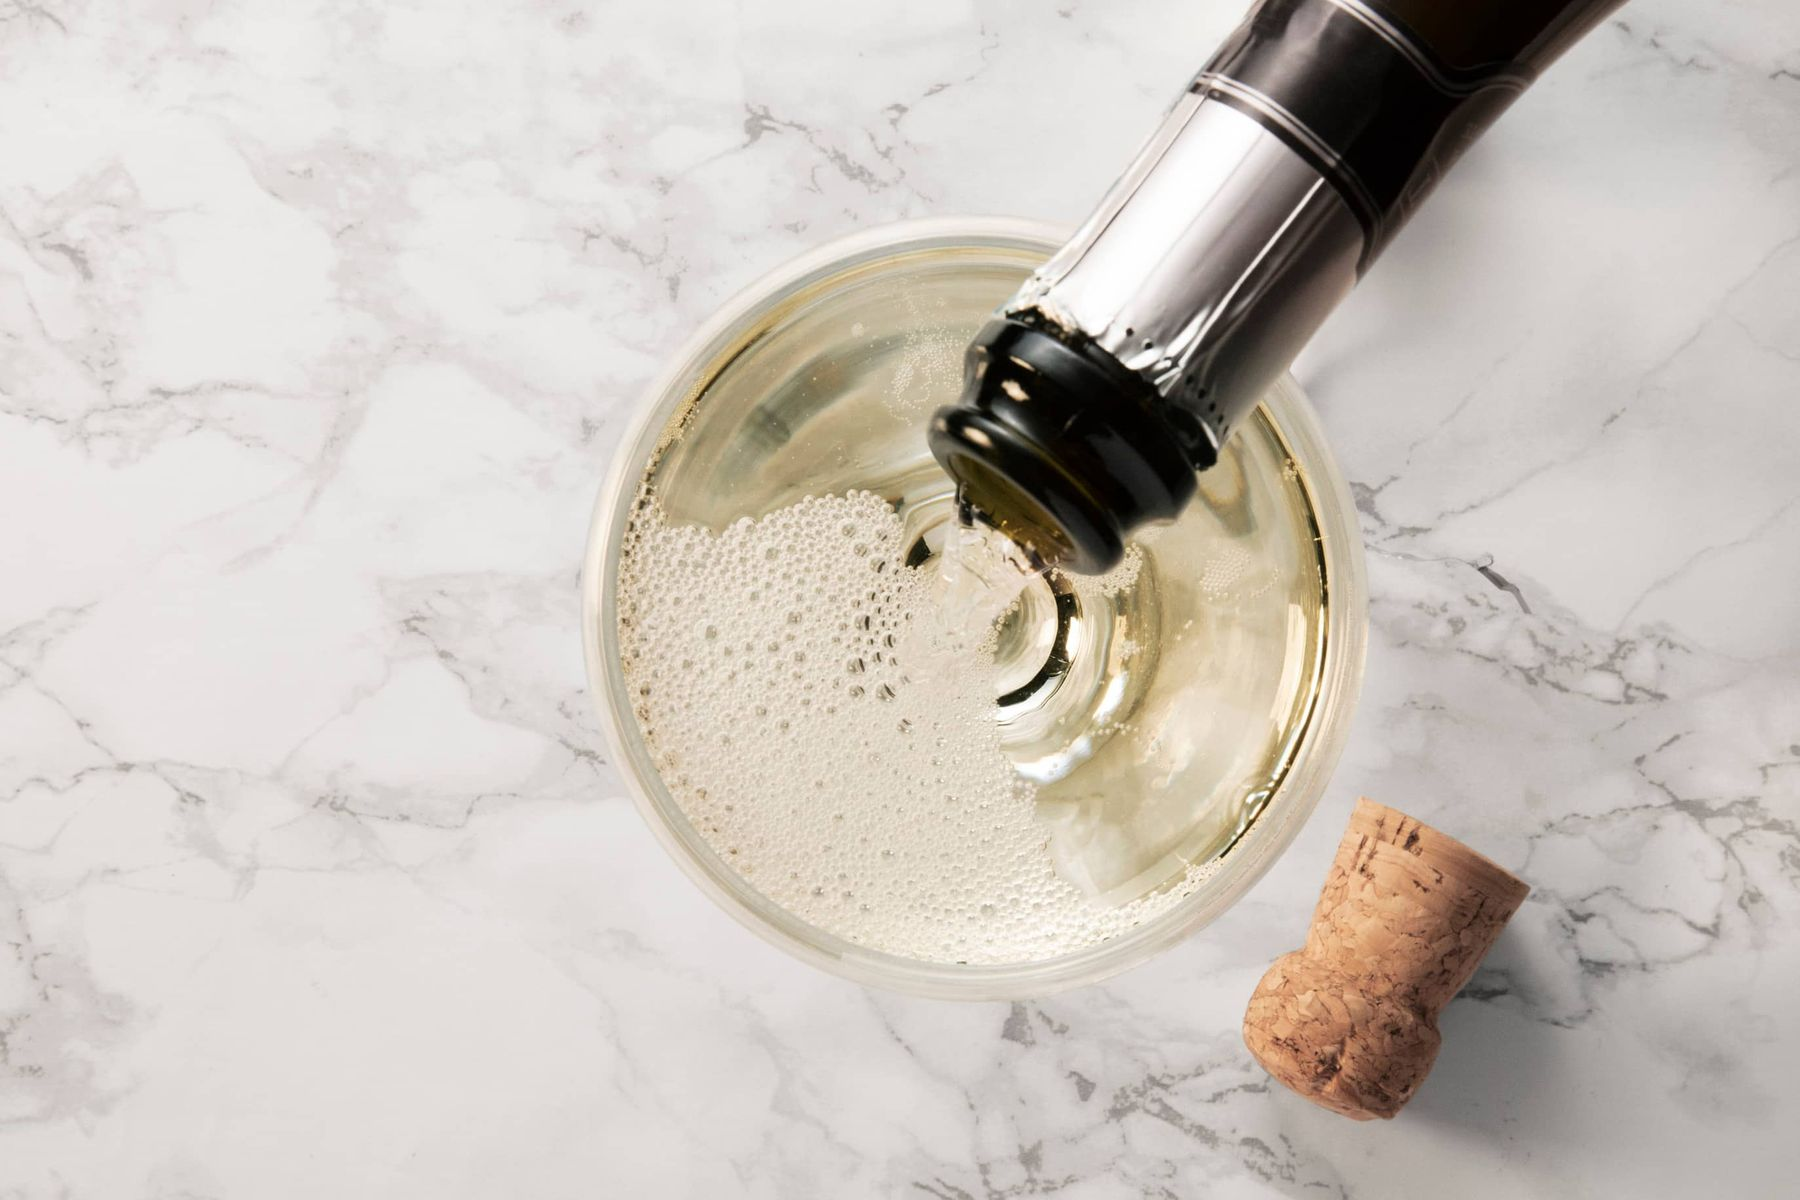 removing white wine or champagne stains